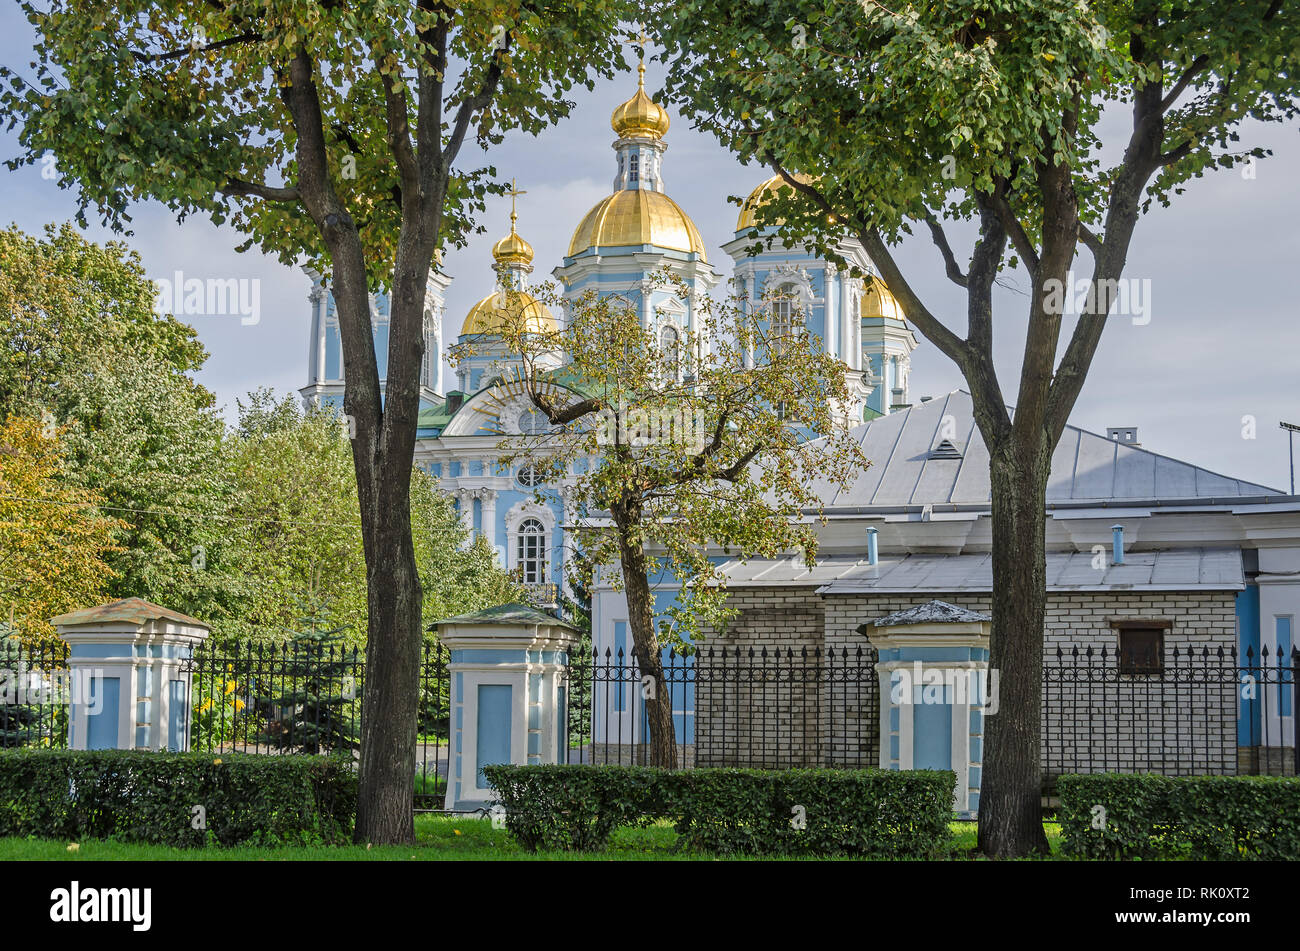 St. Nicholas Naval Cathedral or St Nicholas Maritime Cathedral, a major Baroque Orthodox cathedral and a major example of the so-called Elizabethan or - Stock Image